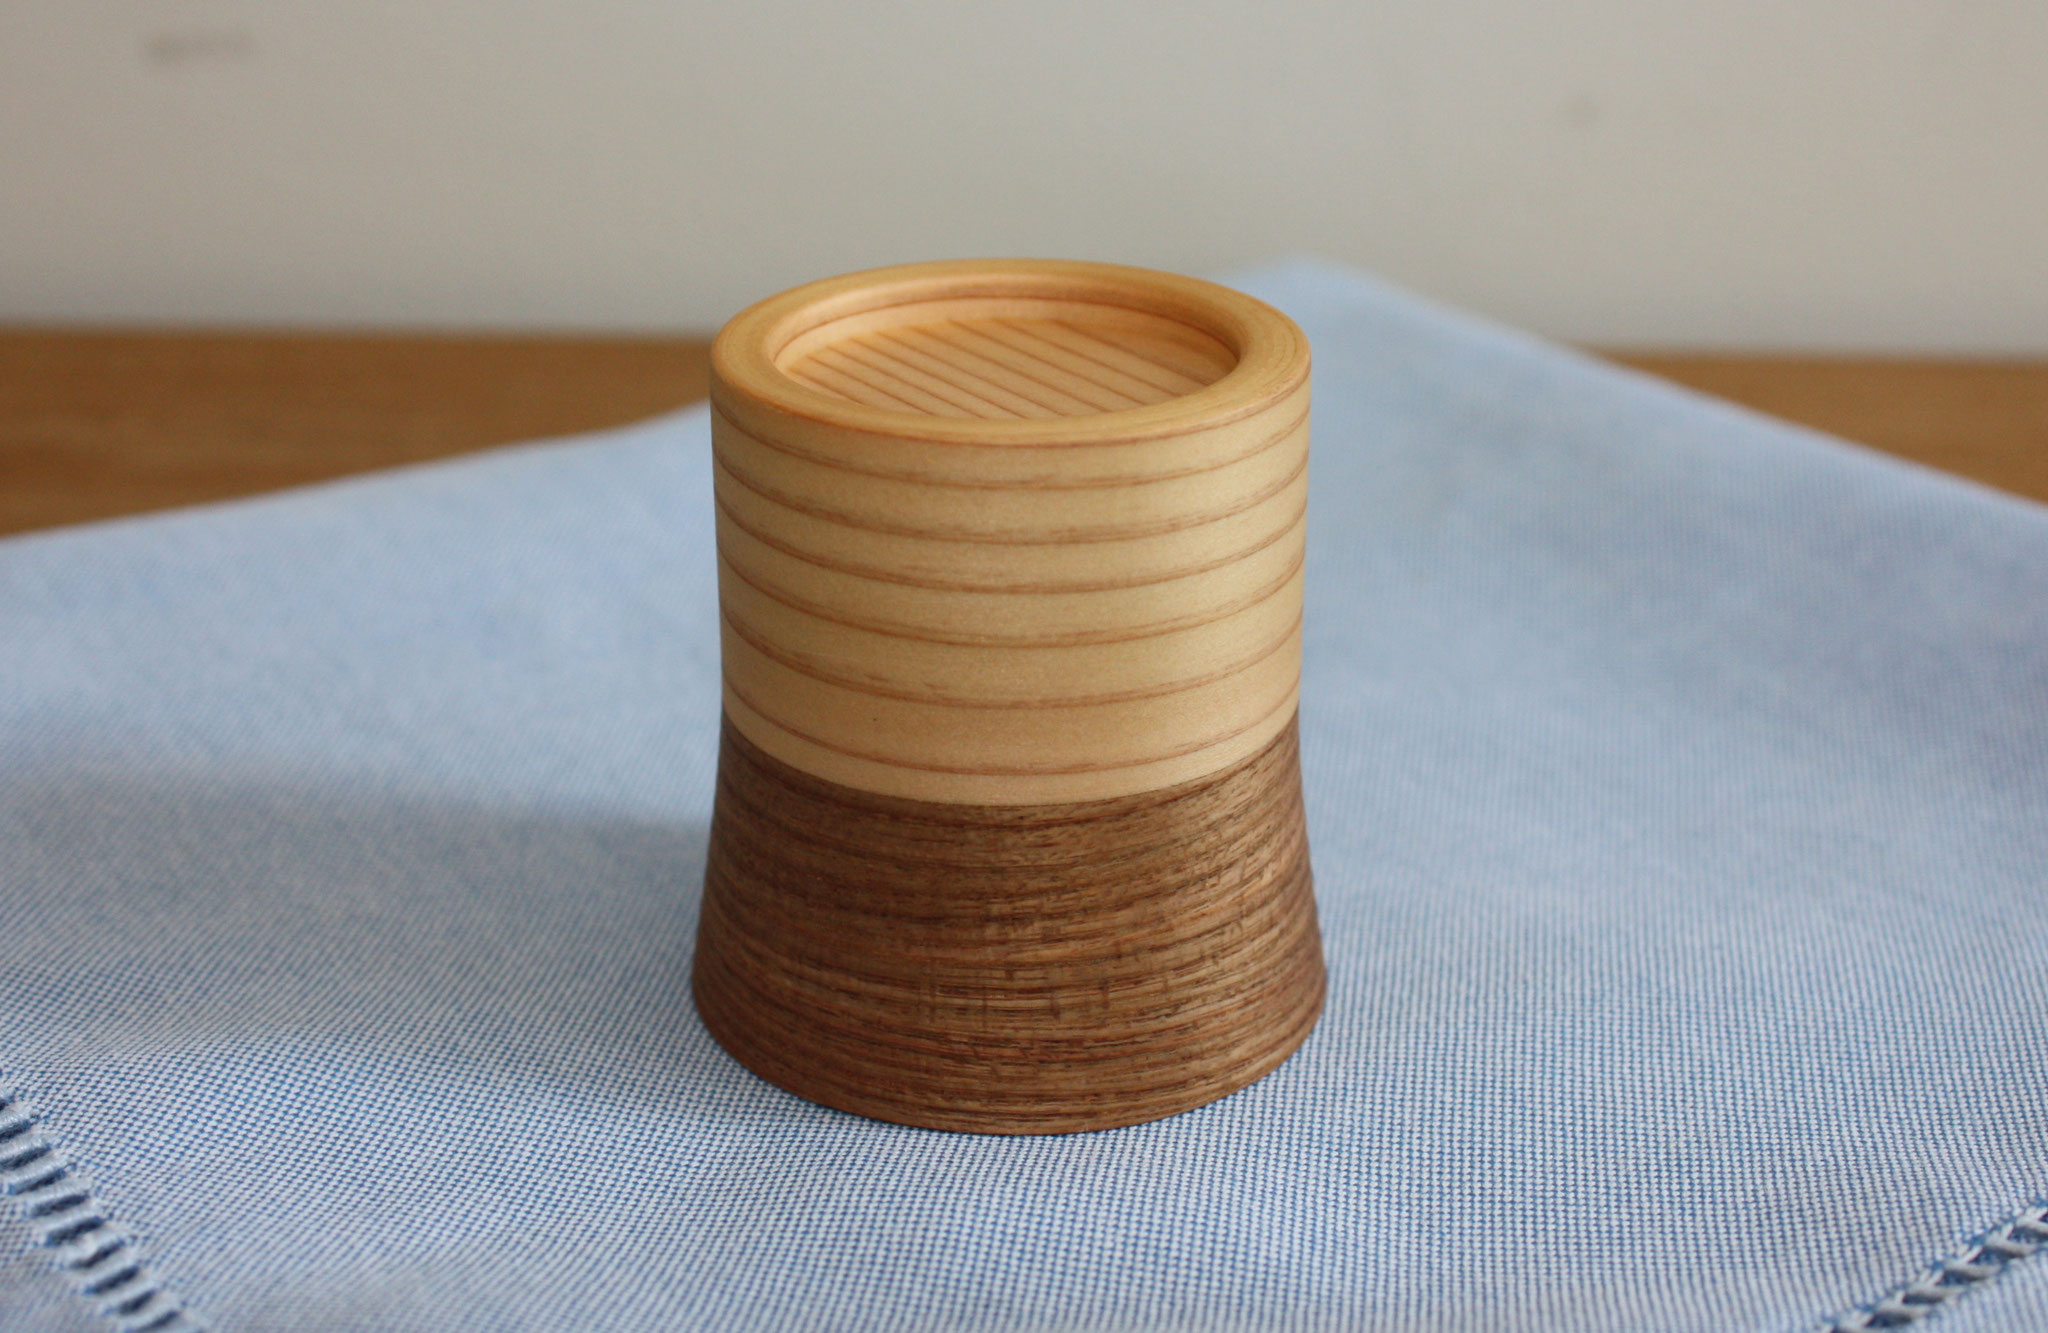 jointed sake cup